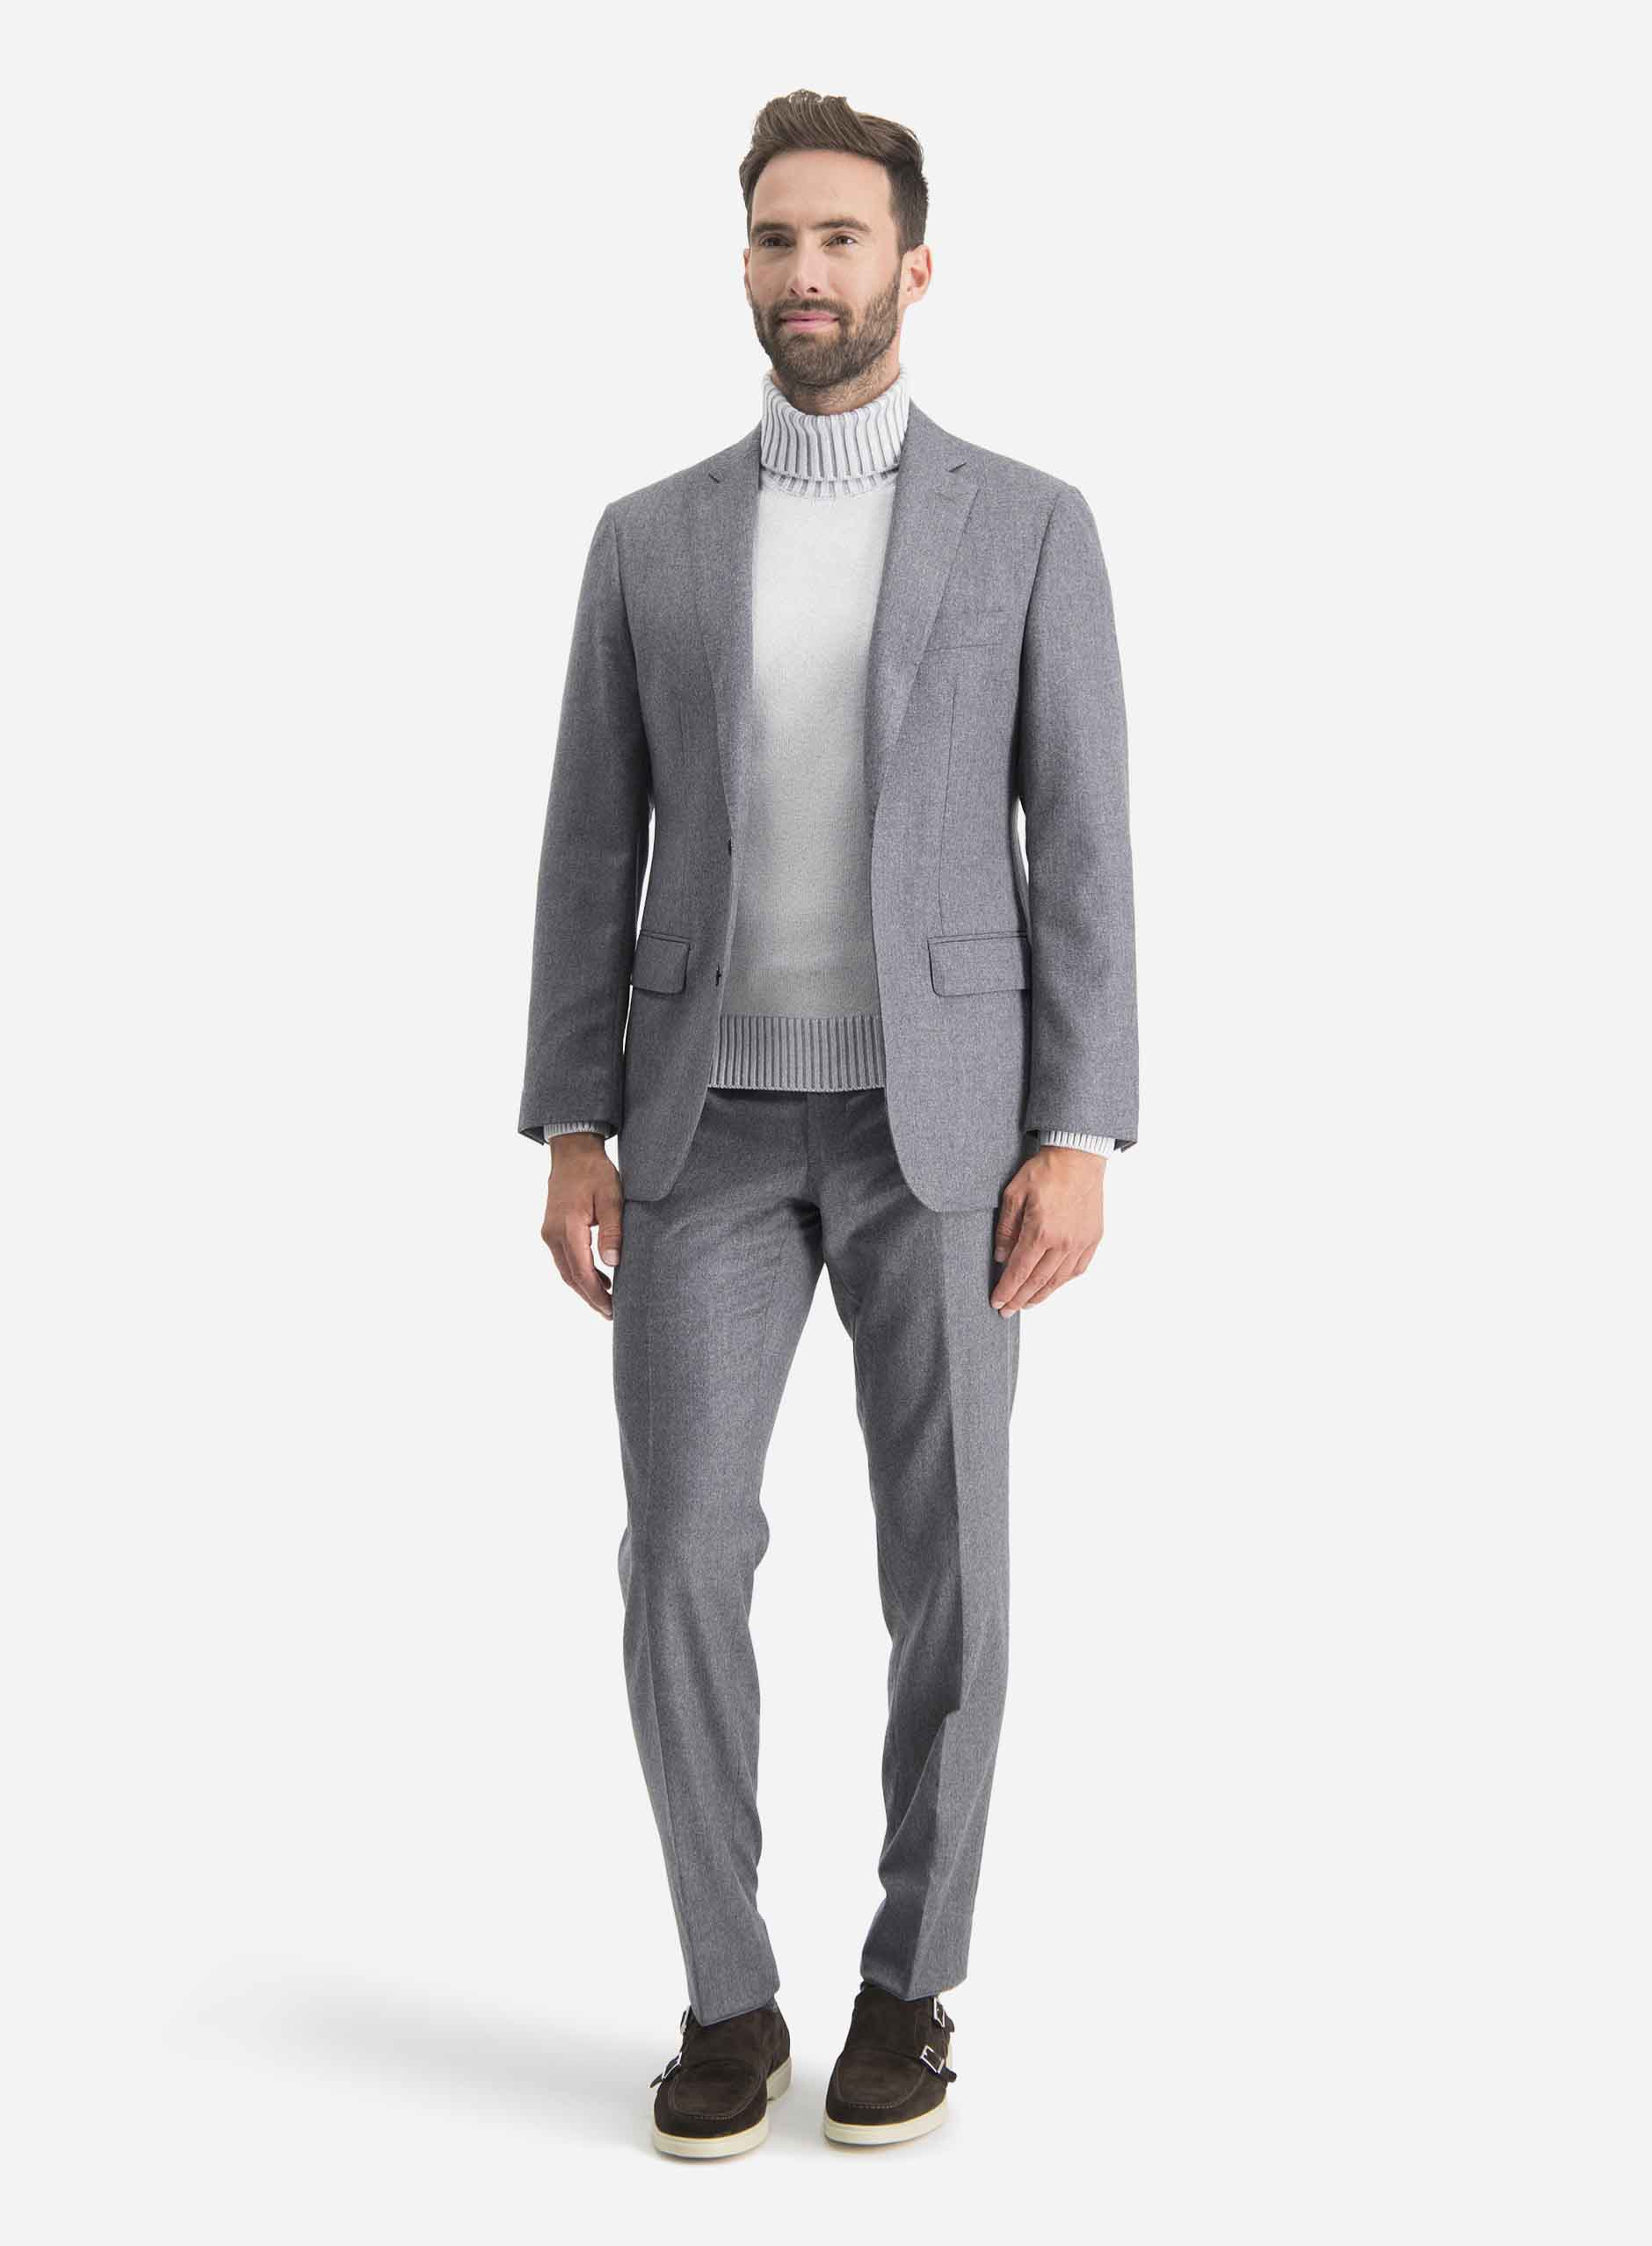 Soft tailoring look